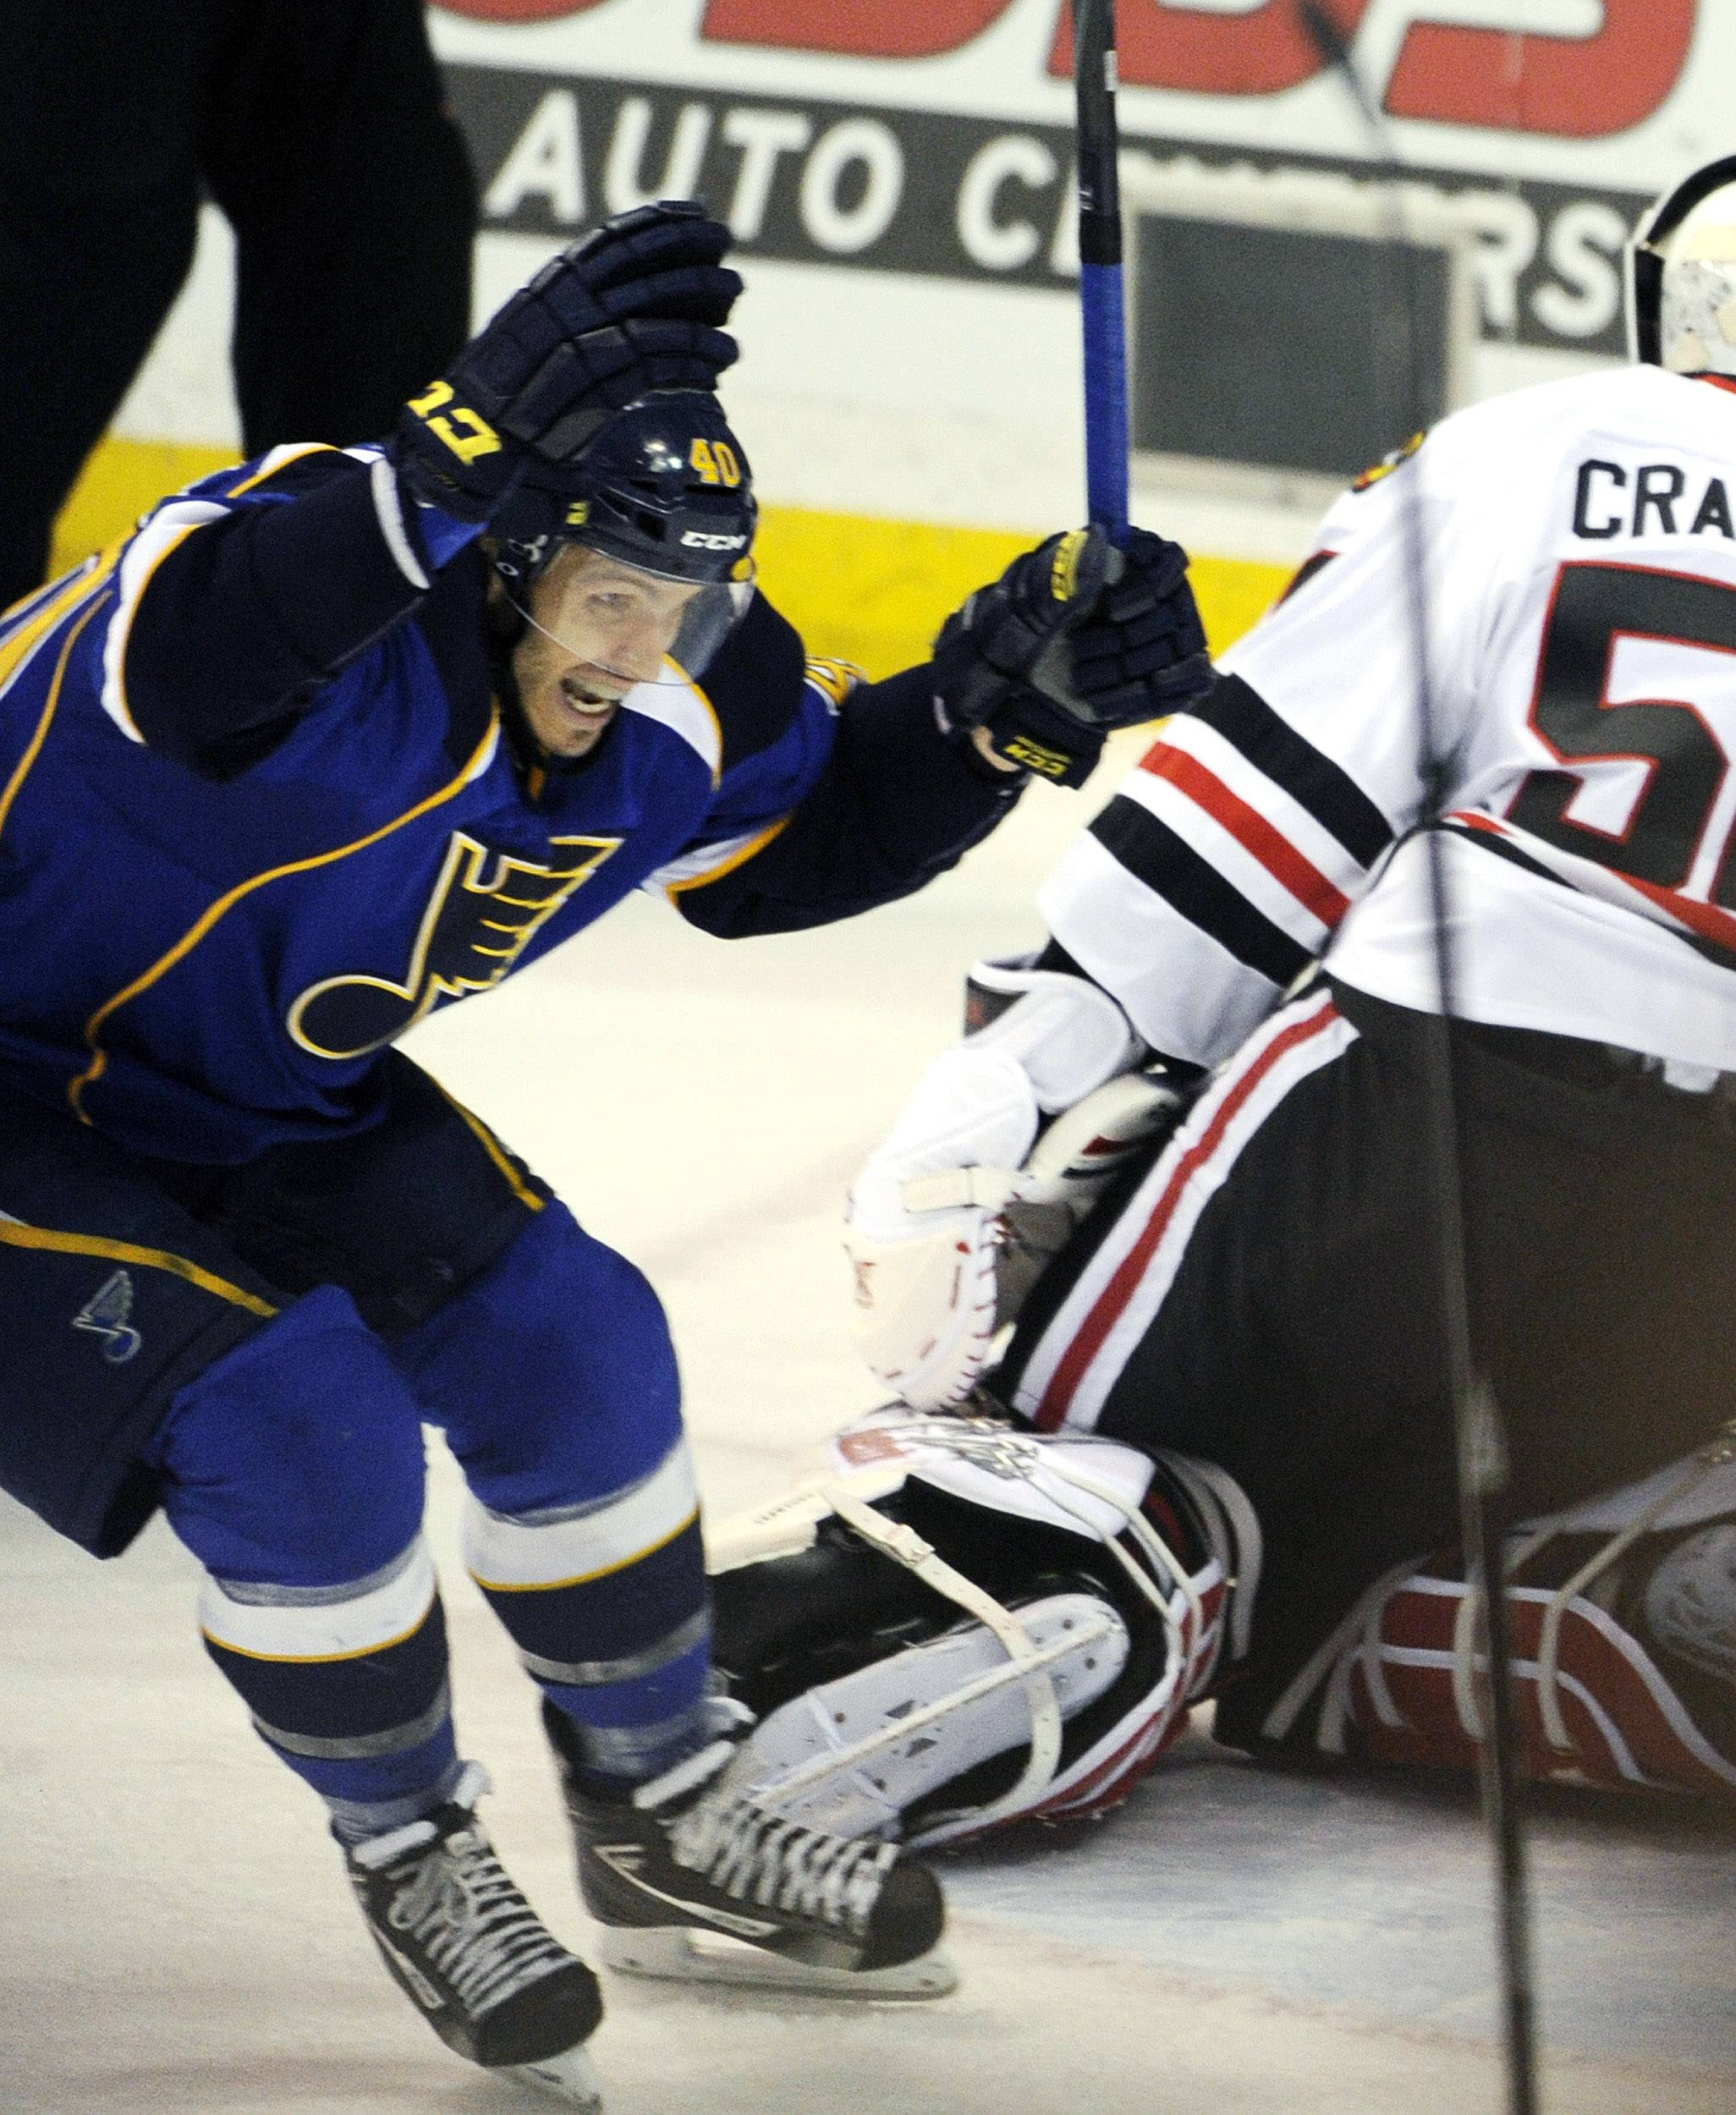 St. Louis Blues' Maxim Lapierre (40) celebrates a game-winning goal by teammate Barret Jackman as Chicago Blackhawks' goalie Corey Crawford, right, looks away during overtime in Game 2 of a first-round NHL hockey playoff series, Saturday, April 19, 2014, in St. Louis.